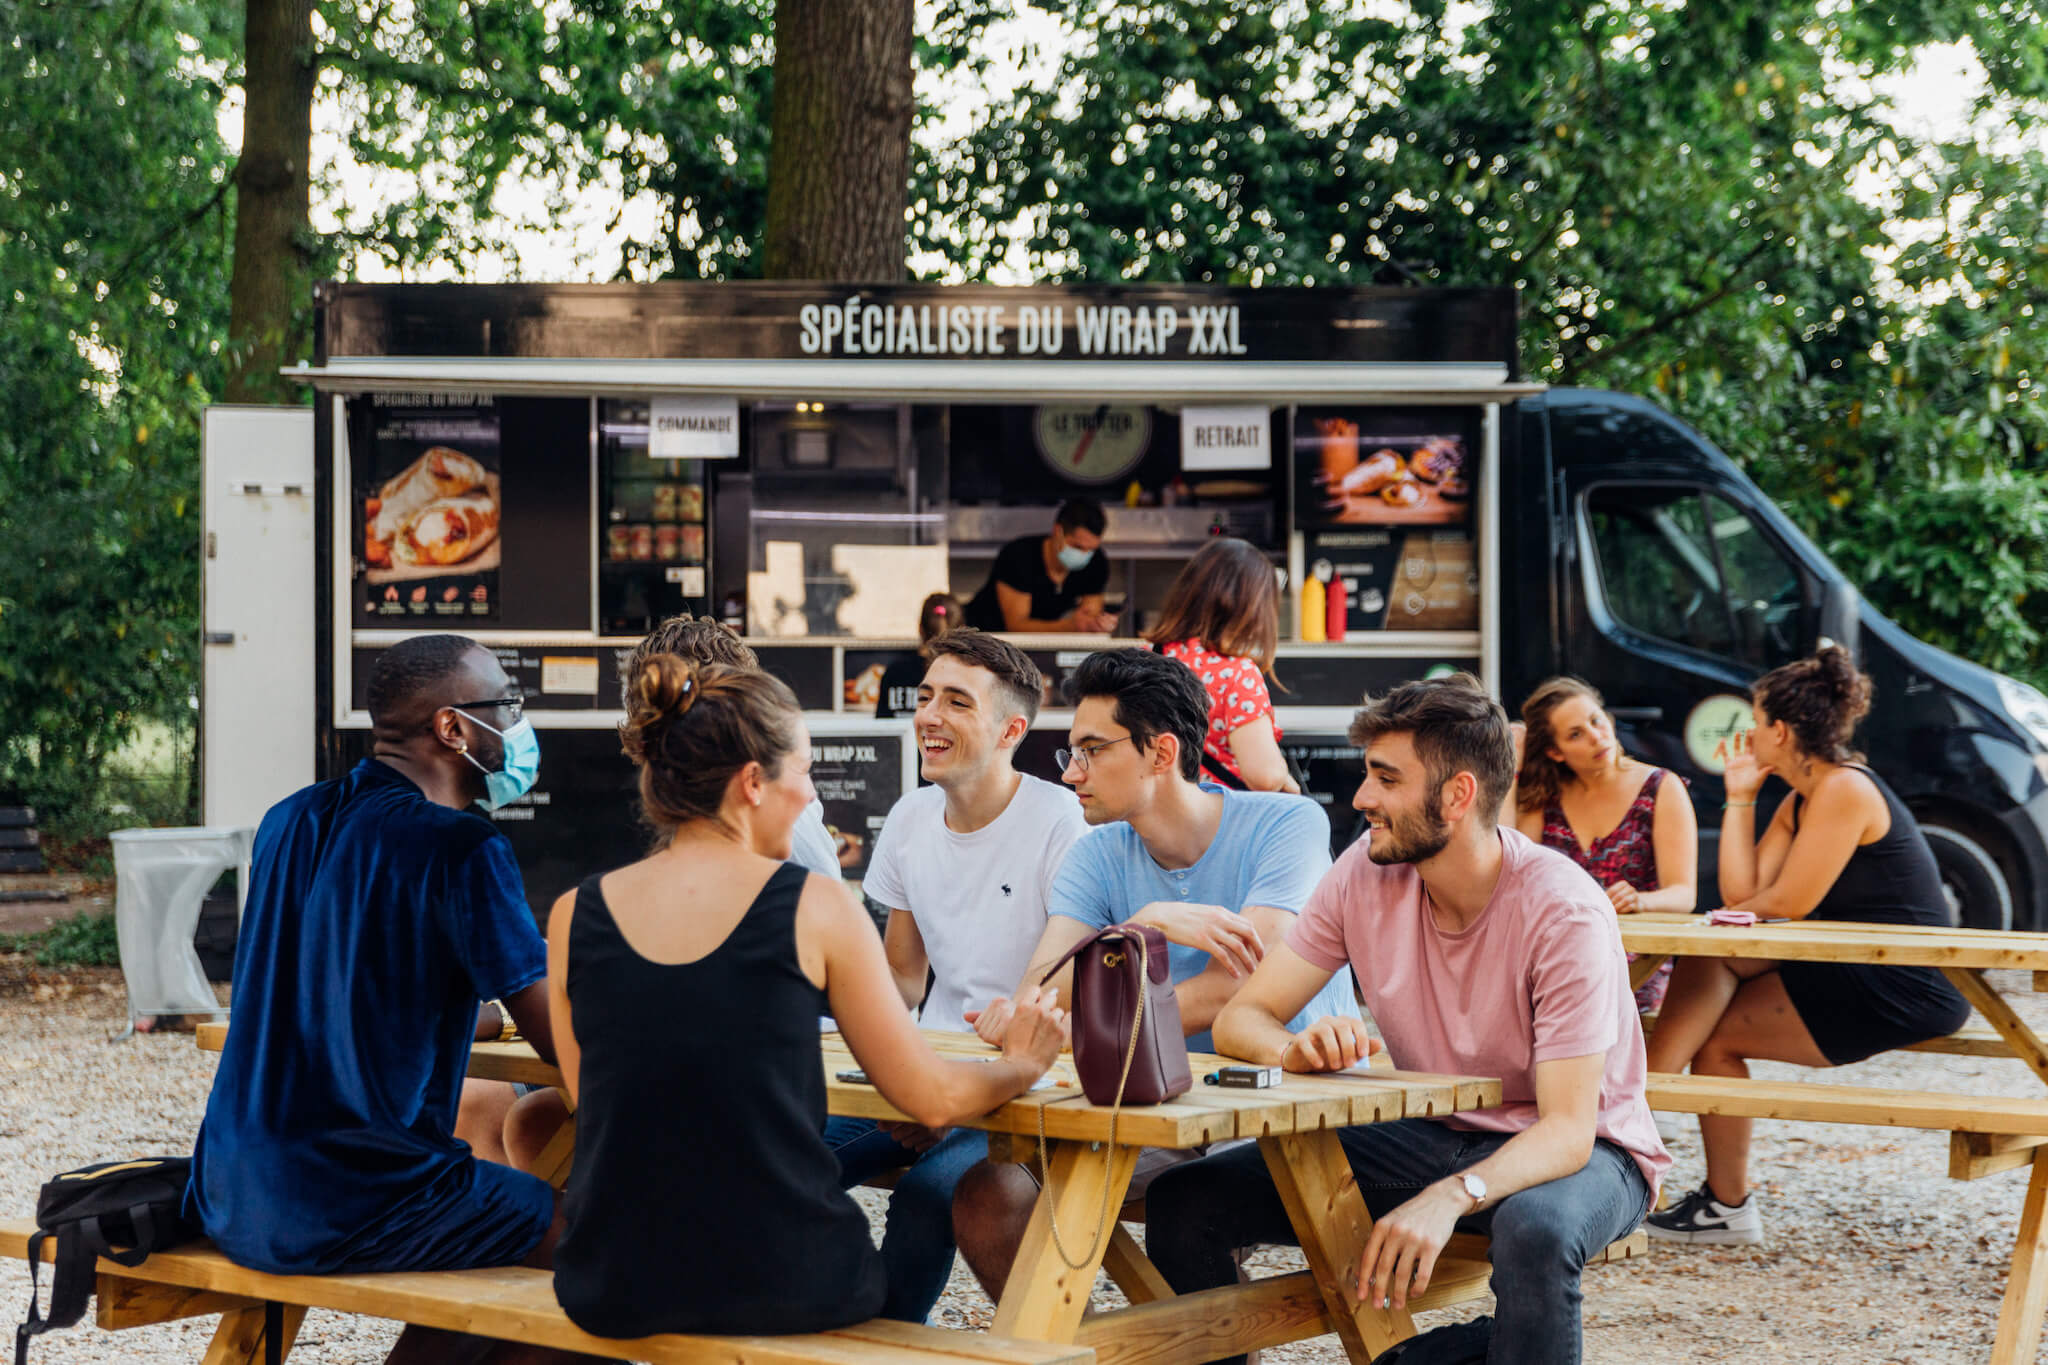 Two groups of people seated at two wooden bench tables in front of a black food truck which has the words 'specialiste du wrap xxl' on it. There is a server in the truck wearing a mask, on his phone. Behind the truck are green trees.